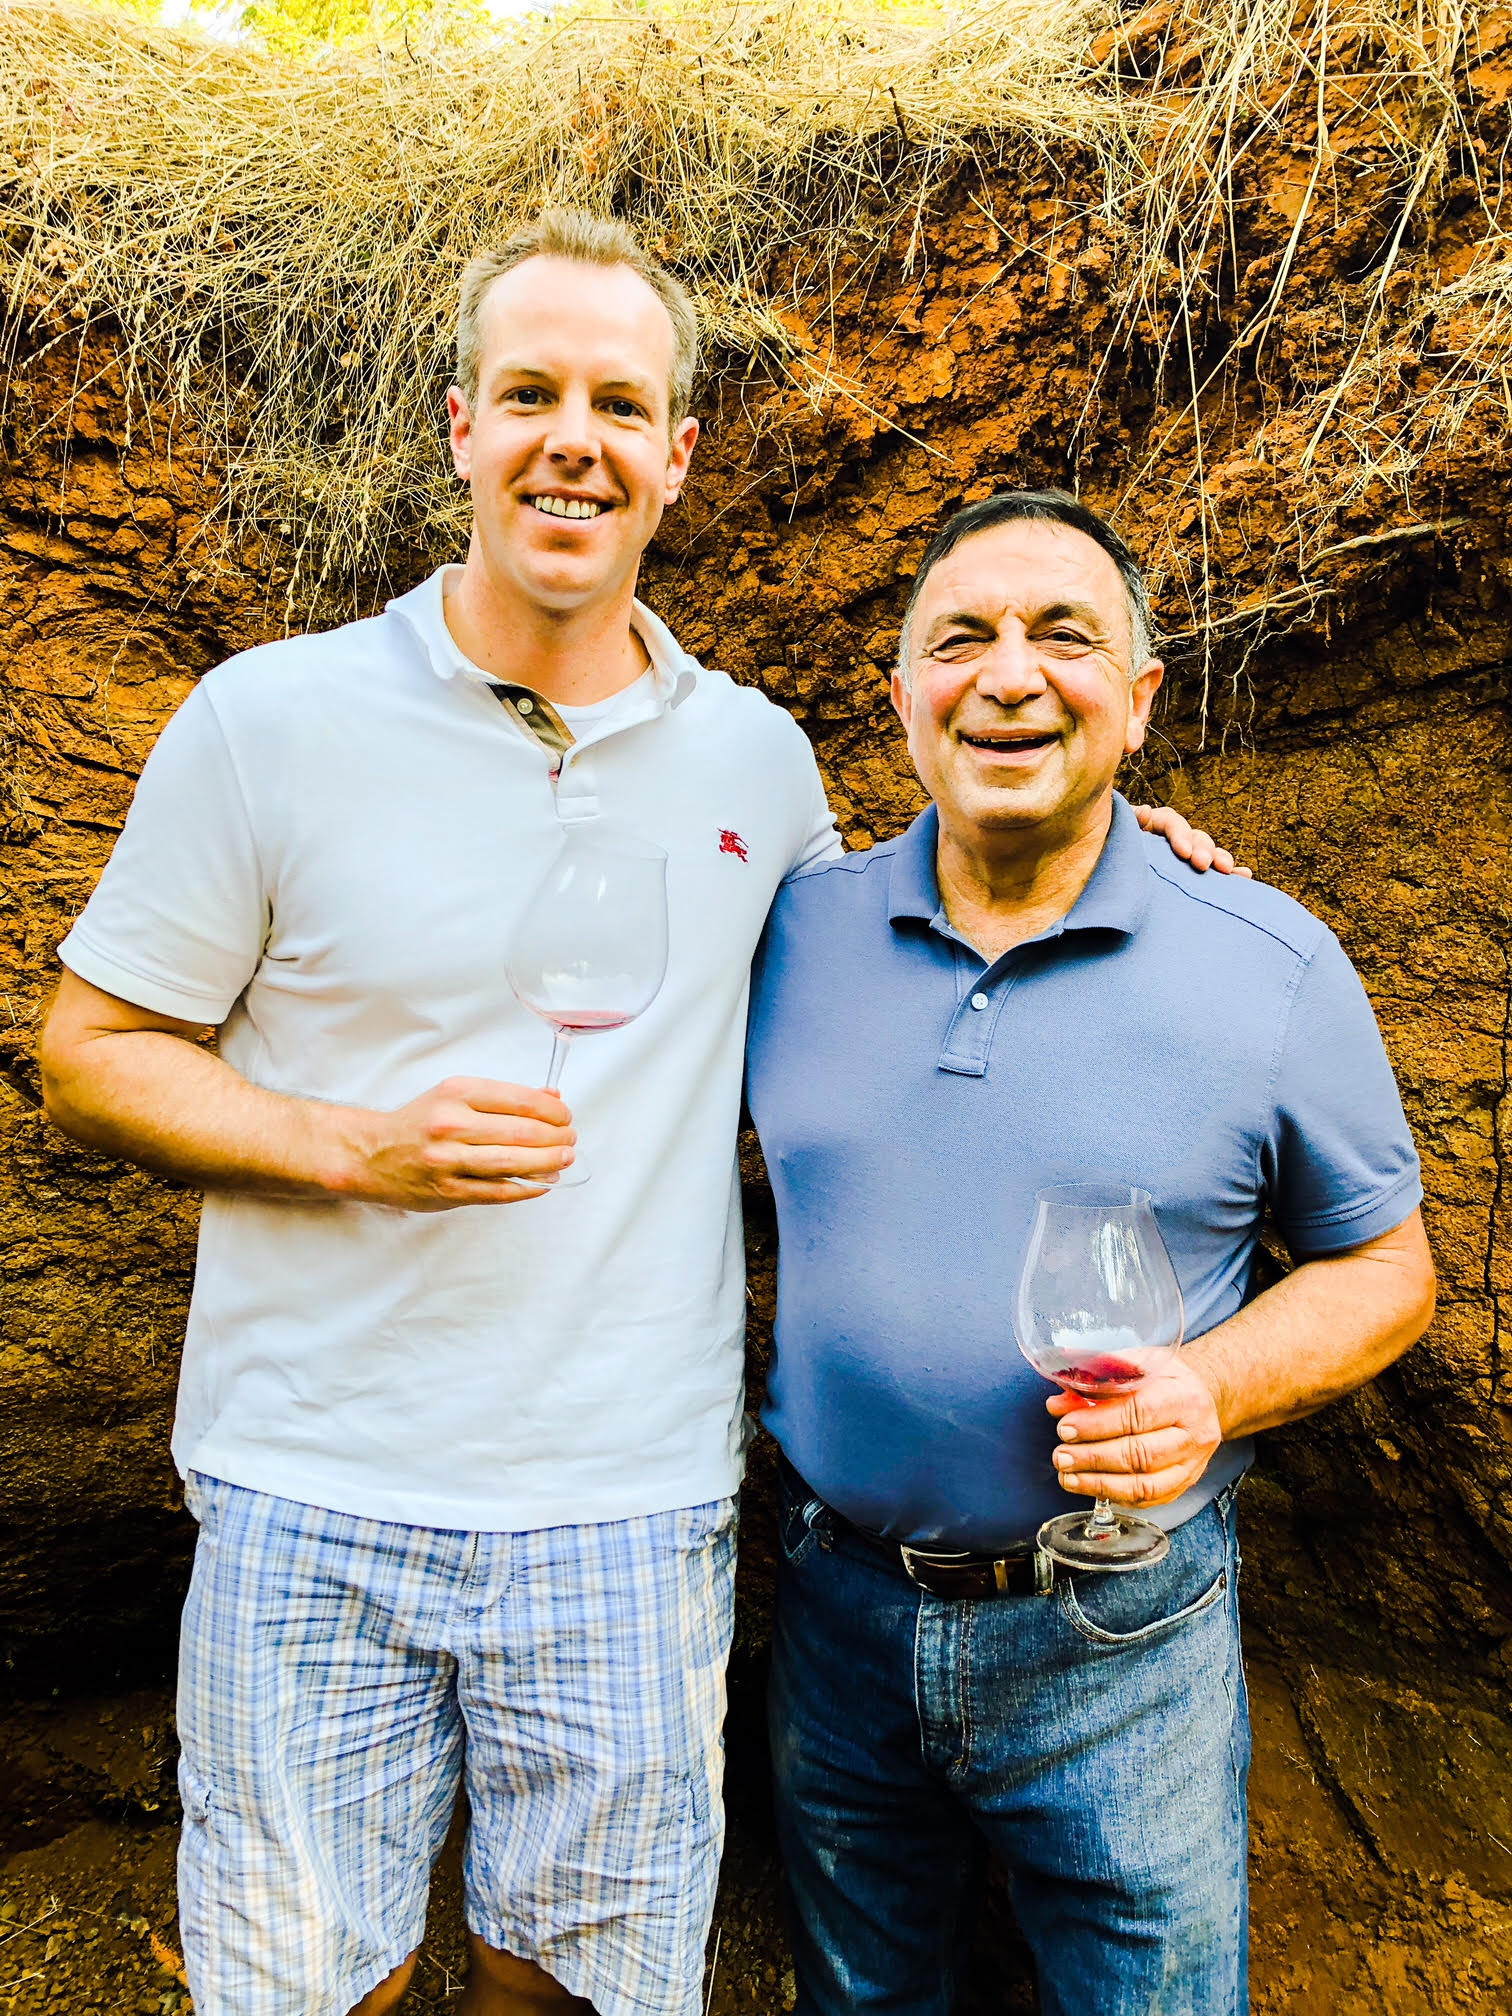 Here I am pictured with Mo Momtazi, pictured in his Momtazi vineyard, as he is one of the pioneers in Oregon Pinot Noir.